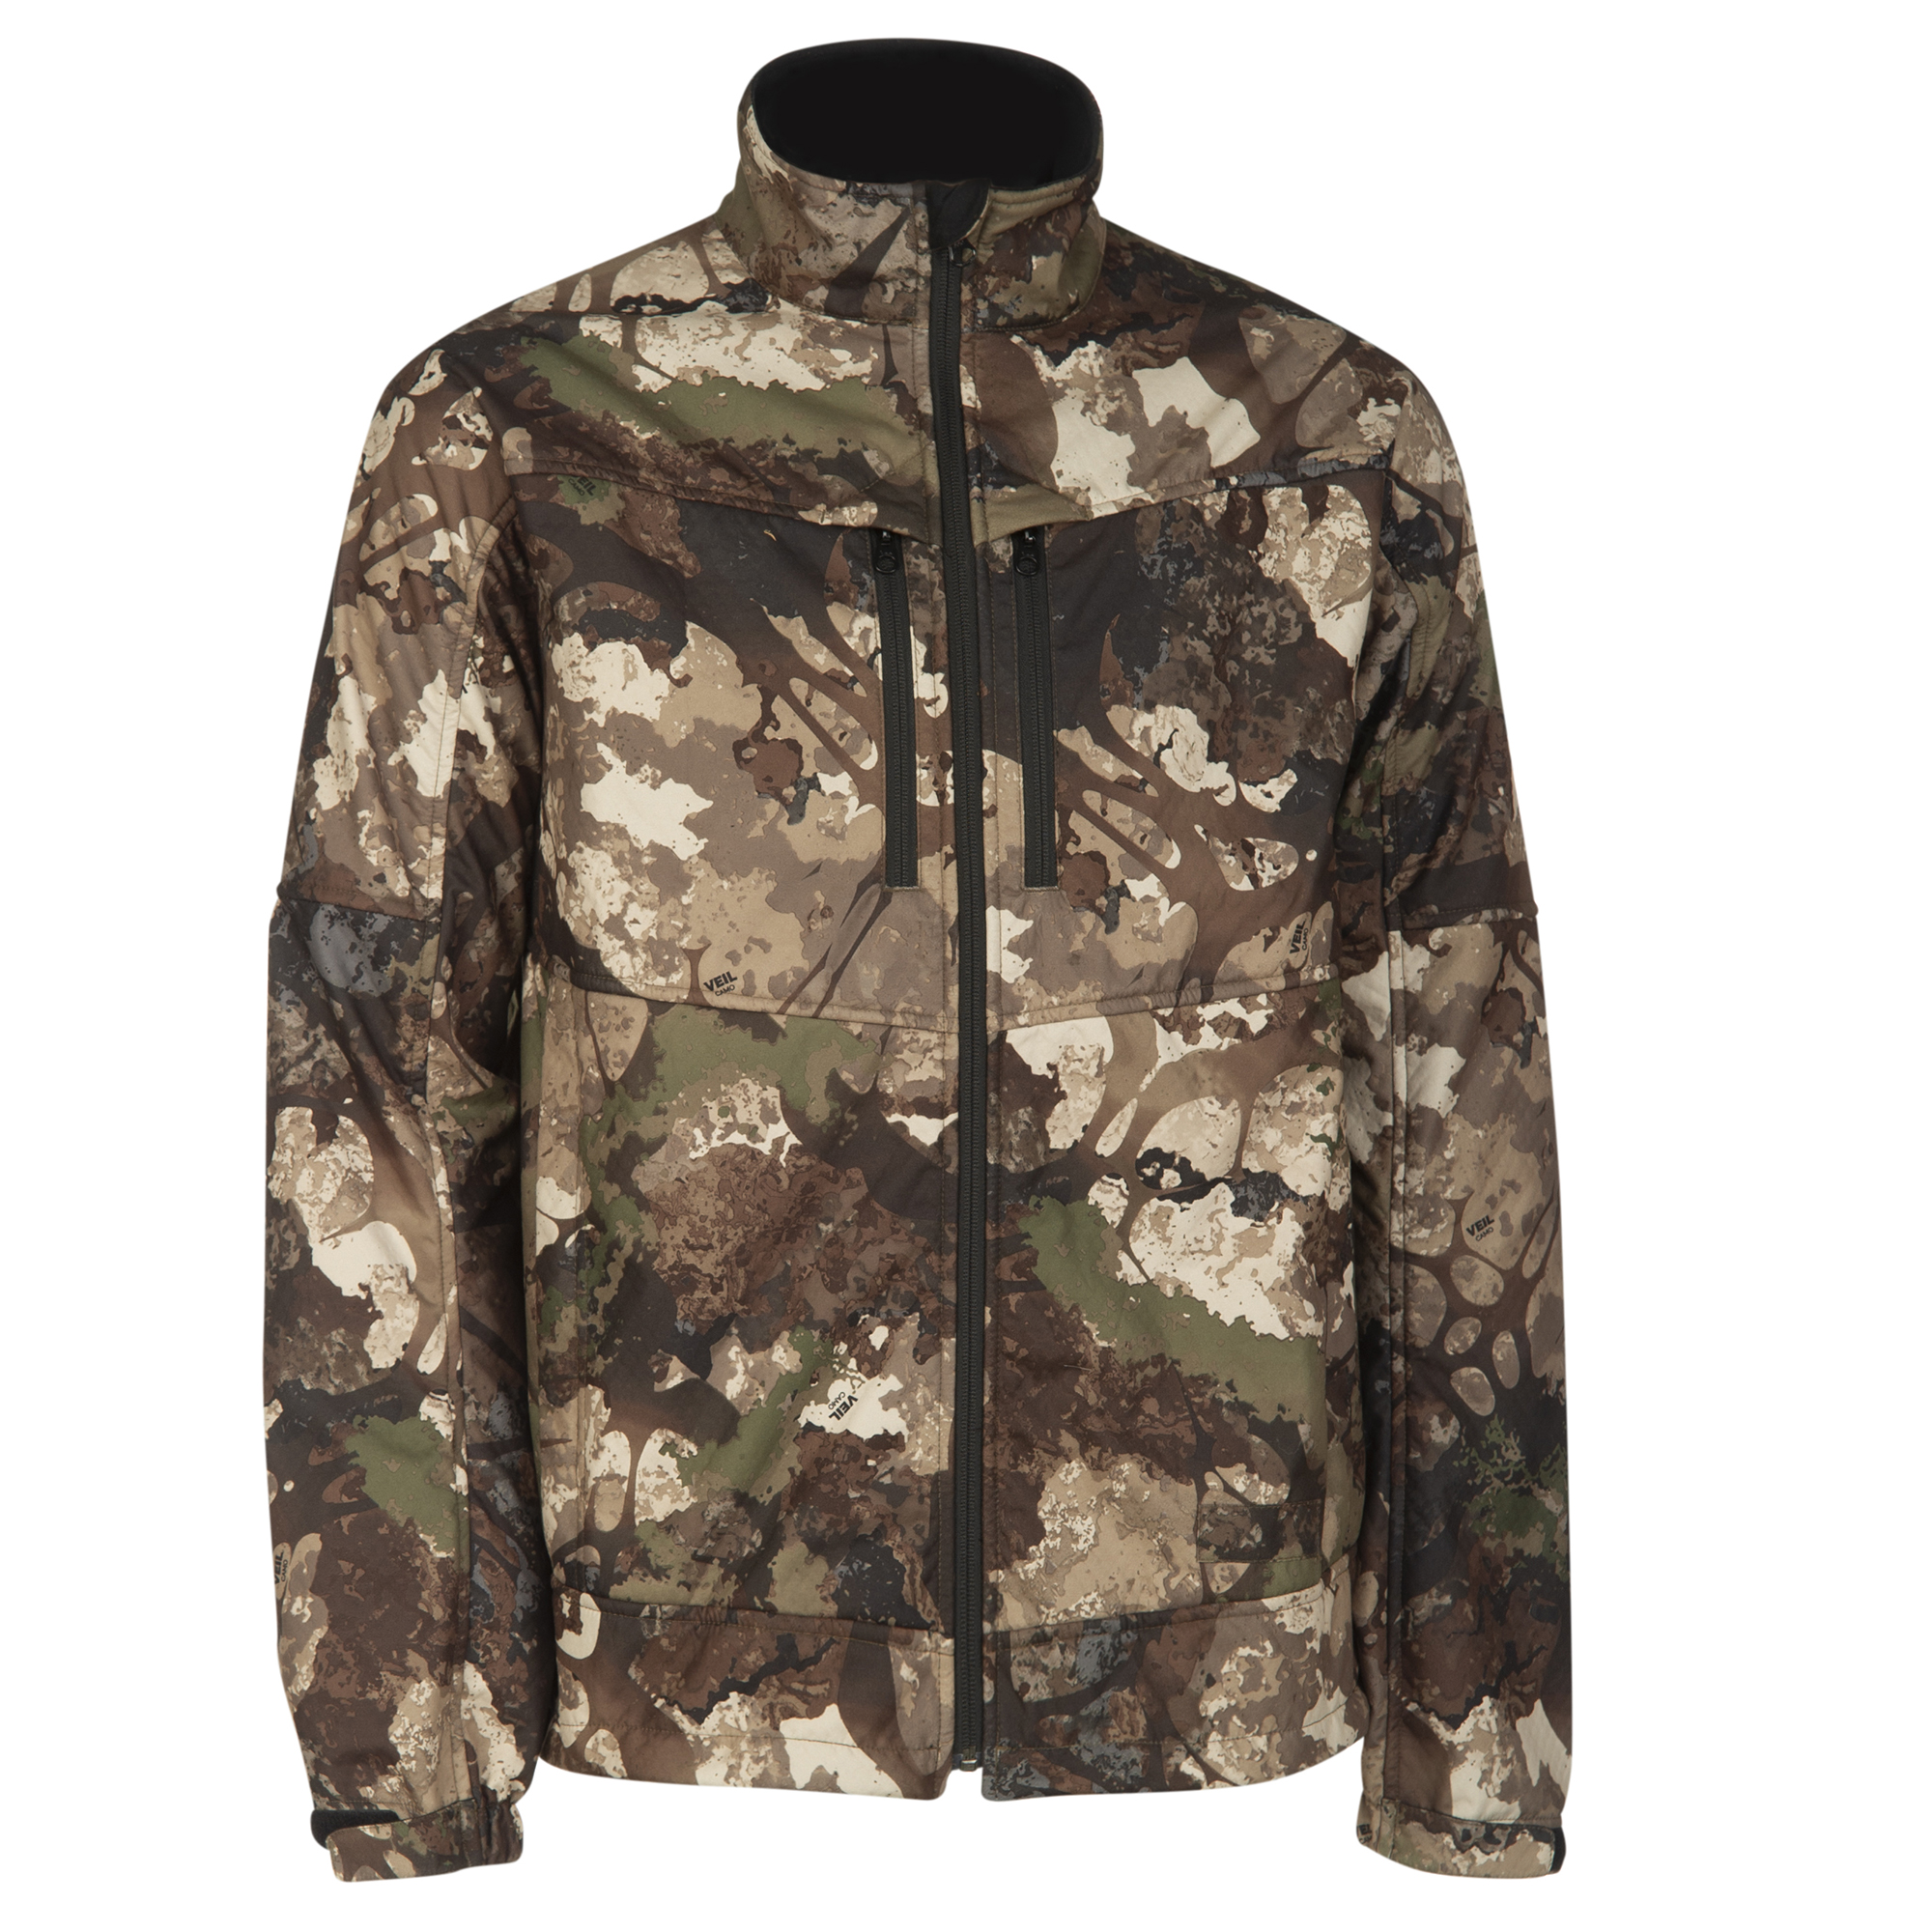 Guide Series Men's VorTec Midweight Jacket